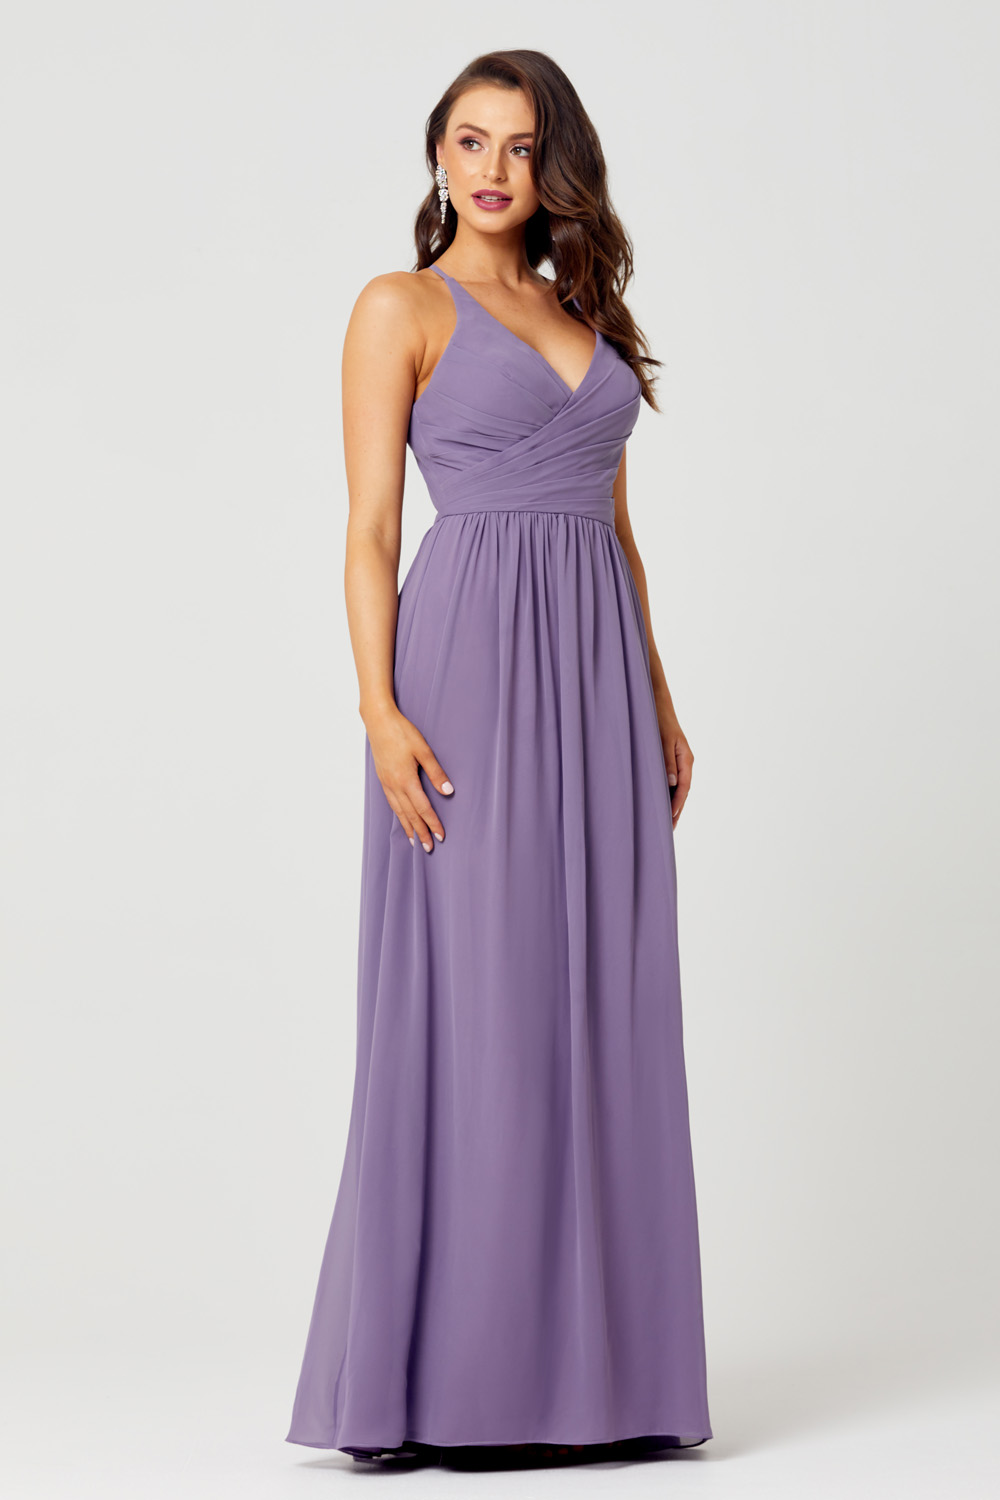 TO833 Side bridie lavender